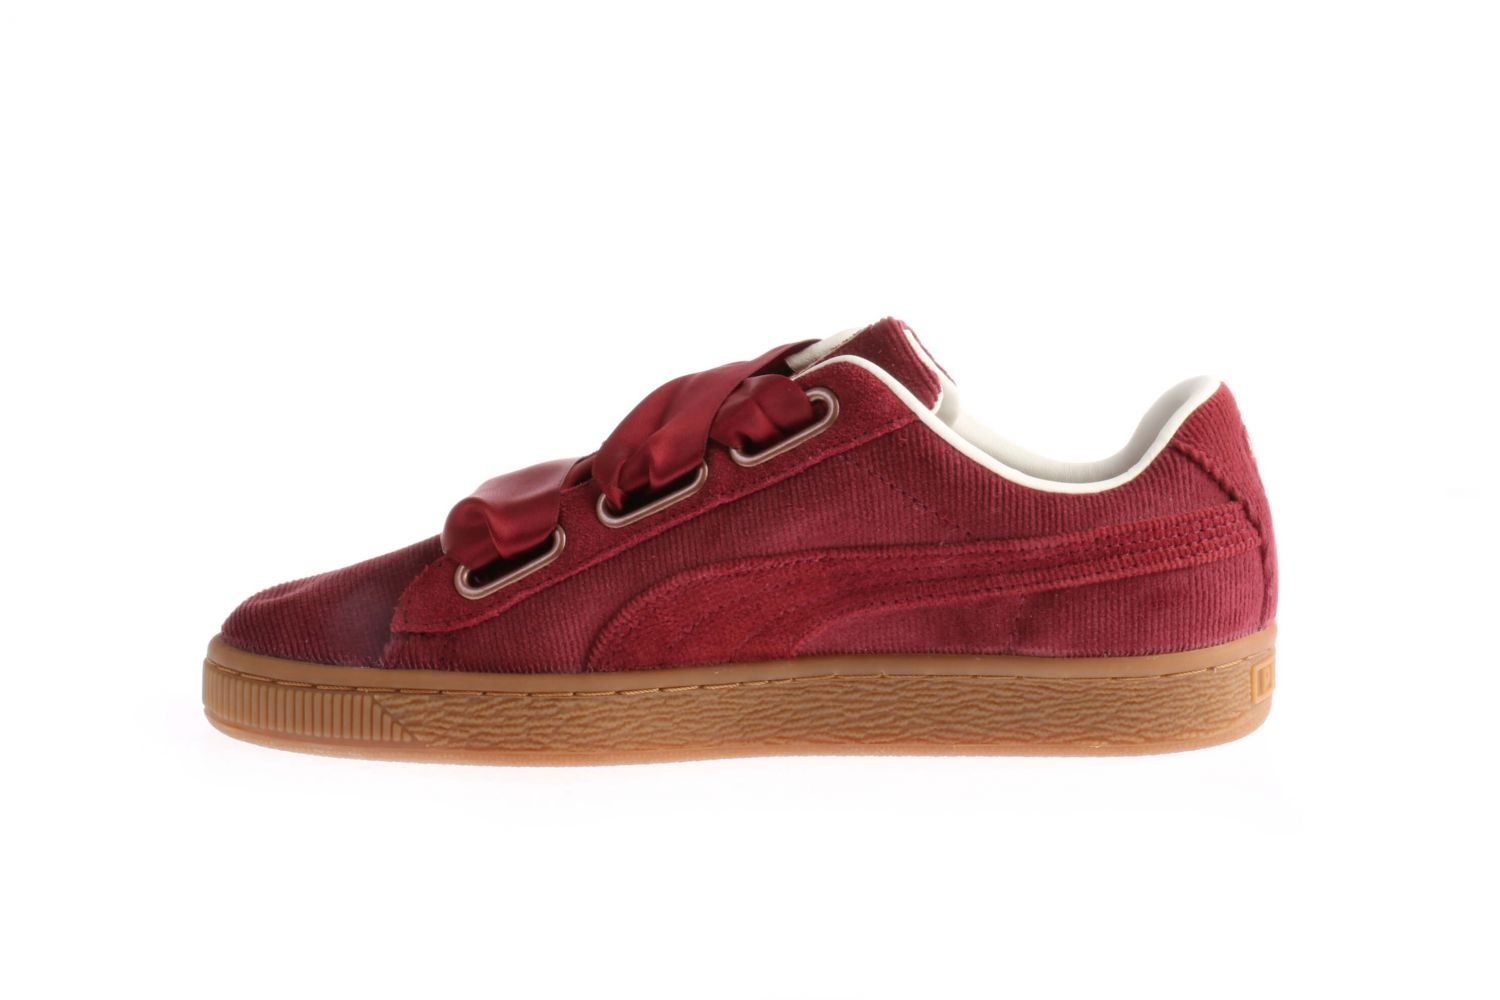 new styles 51d77 6ad1e Puma Basket Heart Corduroy Bordeaux